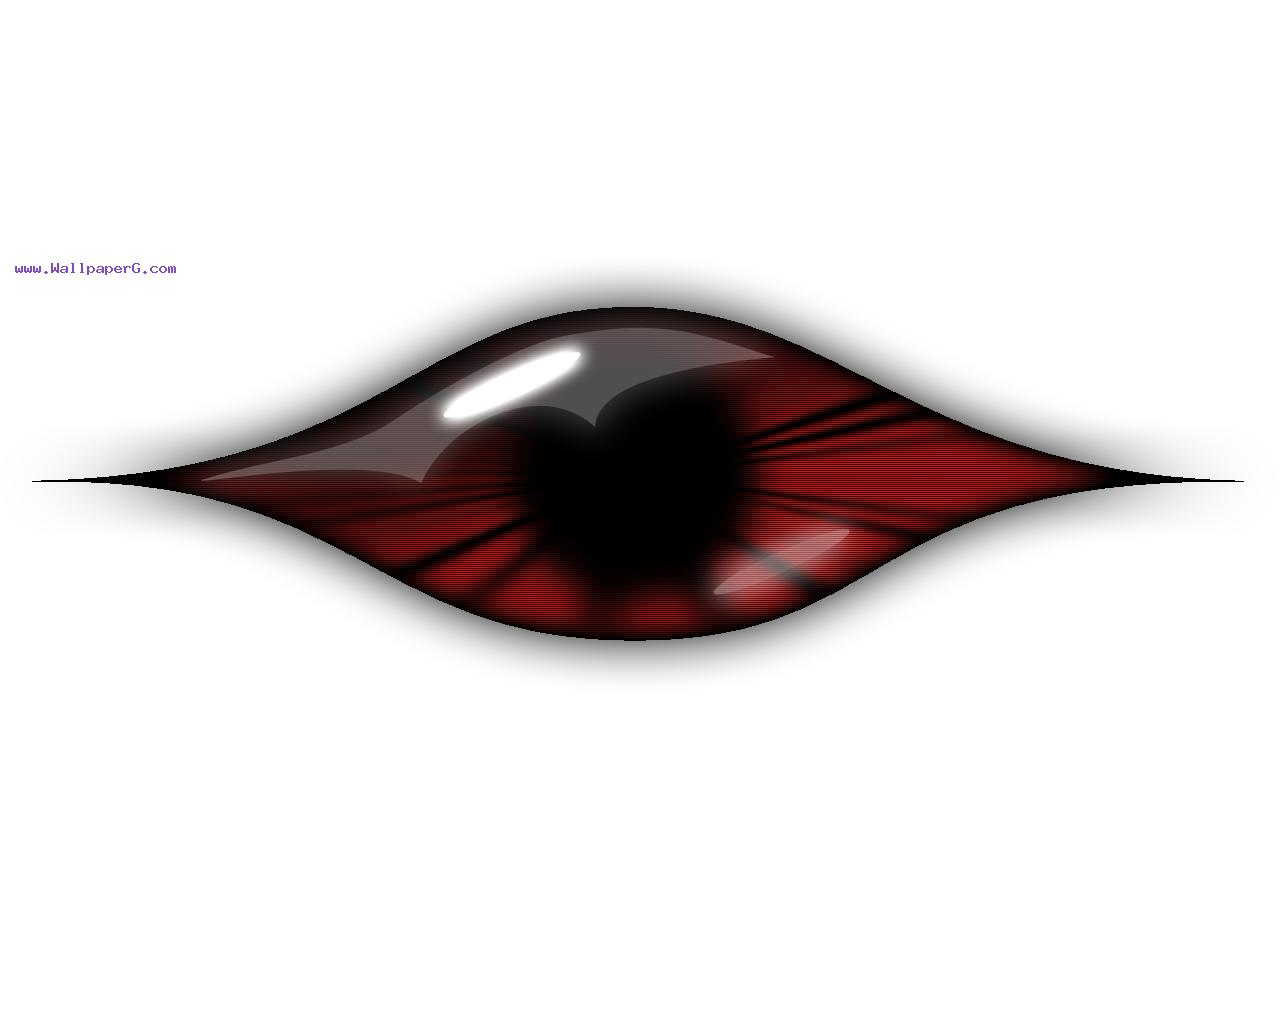 Red eyes ,wide,wallpapers,images,pictute,photos